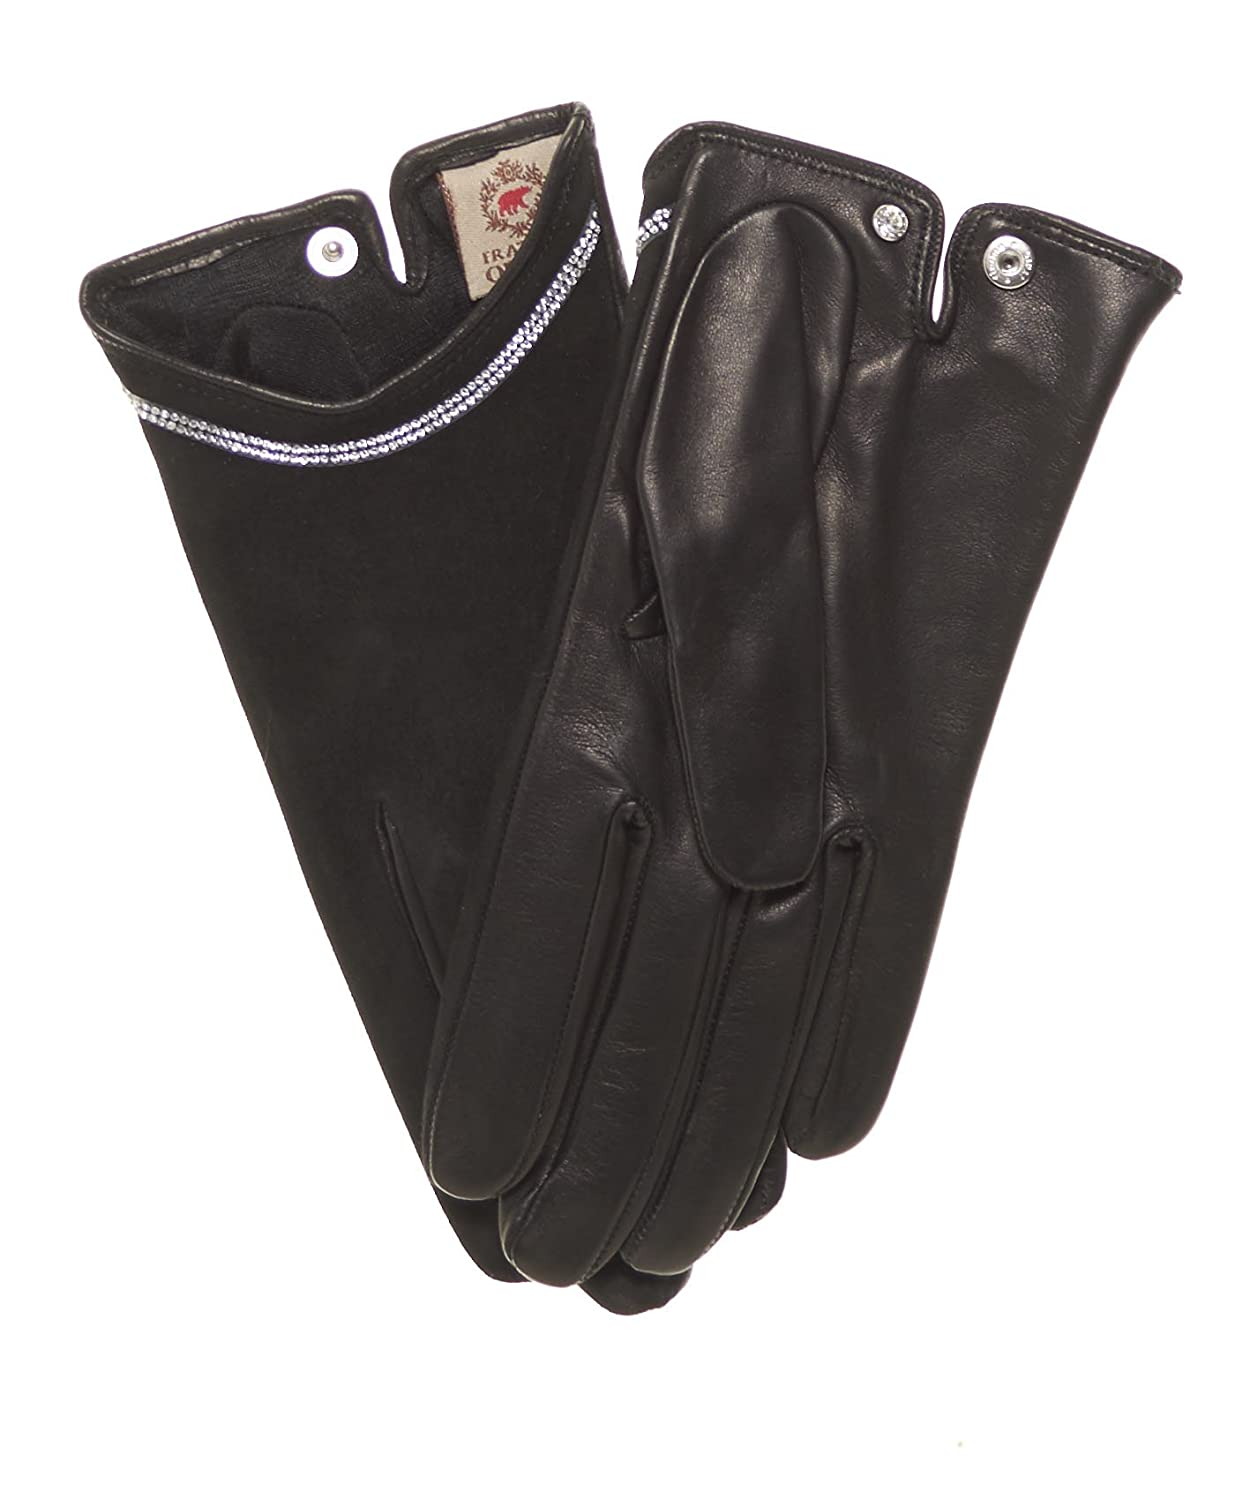 54681cd80 Fratelli Orsini Women's Sueded Lambskin Silk Lined Leather Gloves with  Swarovski Crystal Trim at Amazon Women's Clothing store: